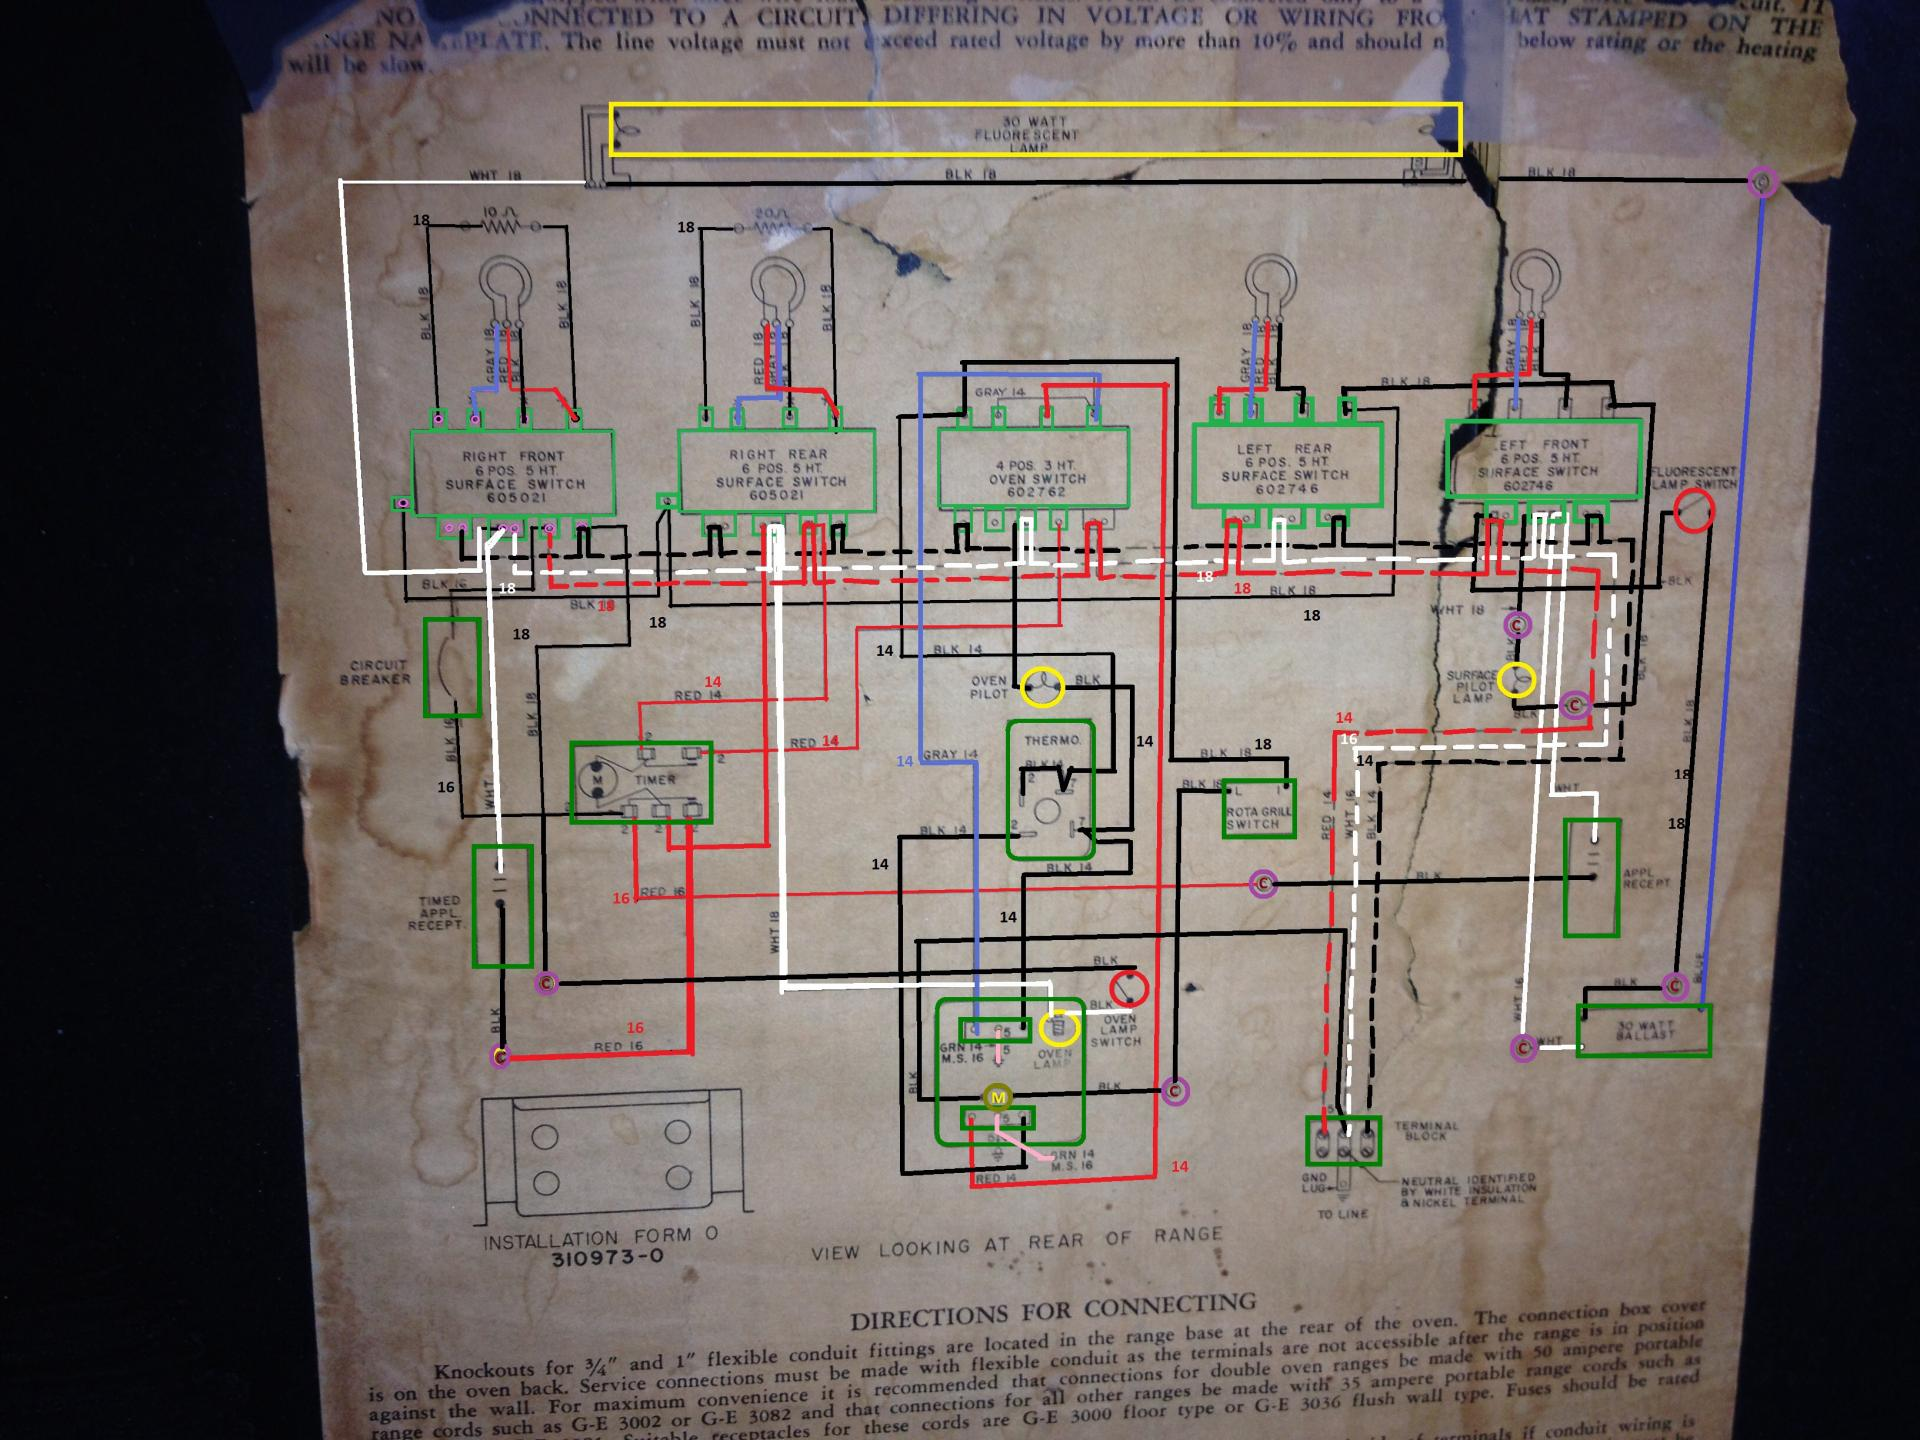 wiring diagram for electric stove the wiring diagram chef electric stove wiring diagram nodasystech wiring diagram